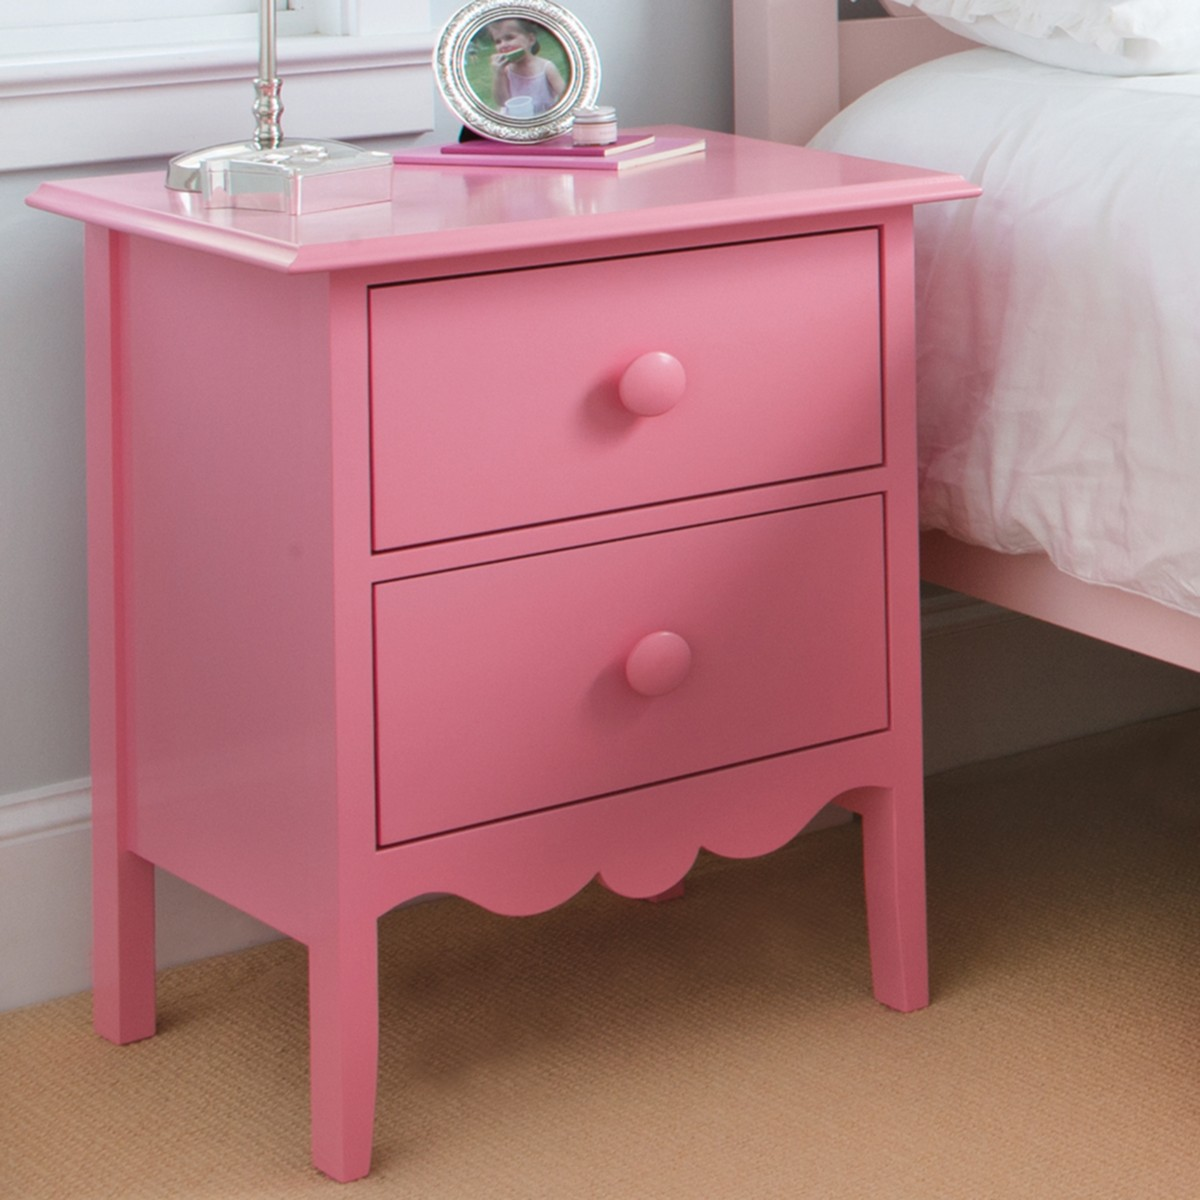 Nellie 2 Drawer Bedside Table by Maine Cottage